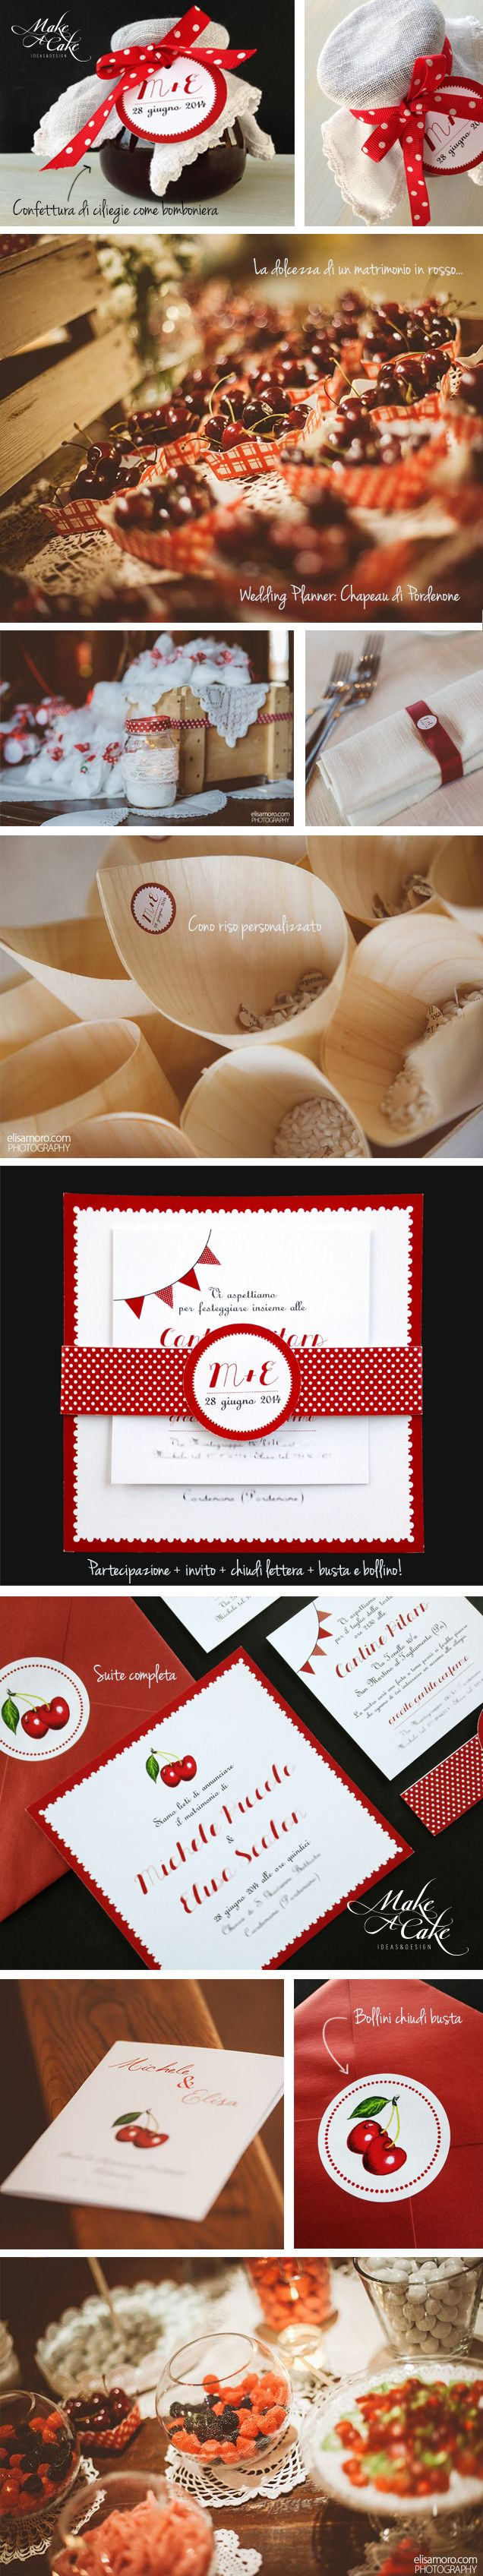 Matrimonio Ciliegie wedding cherry stationery invitation wedding favor customized you can find it at www.makeacake.it